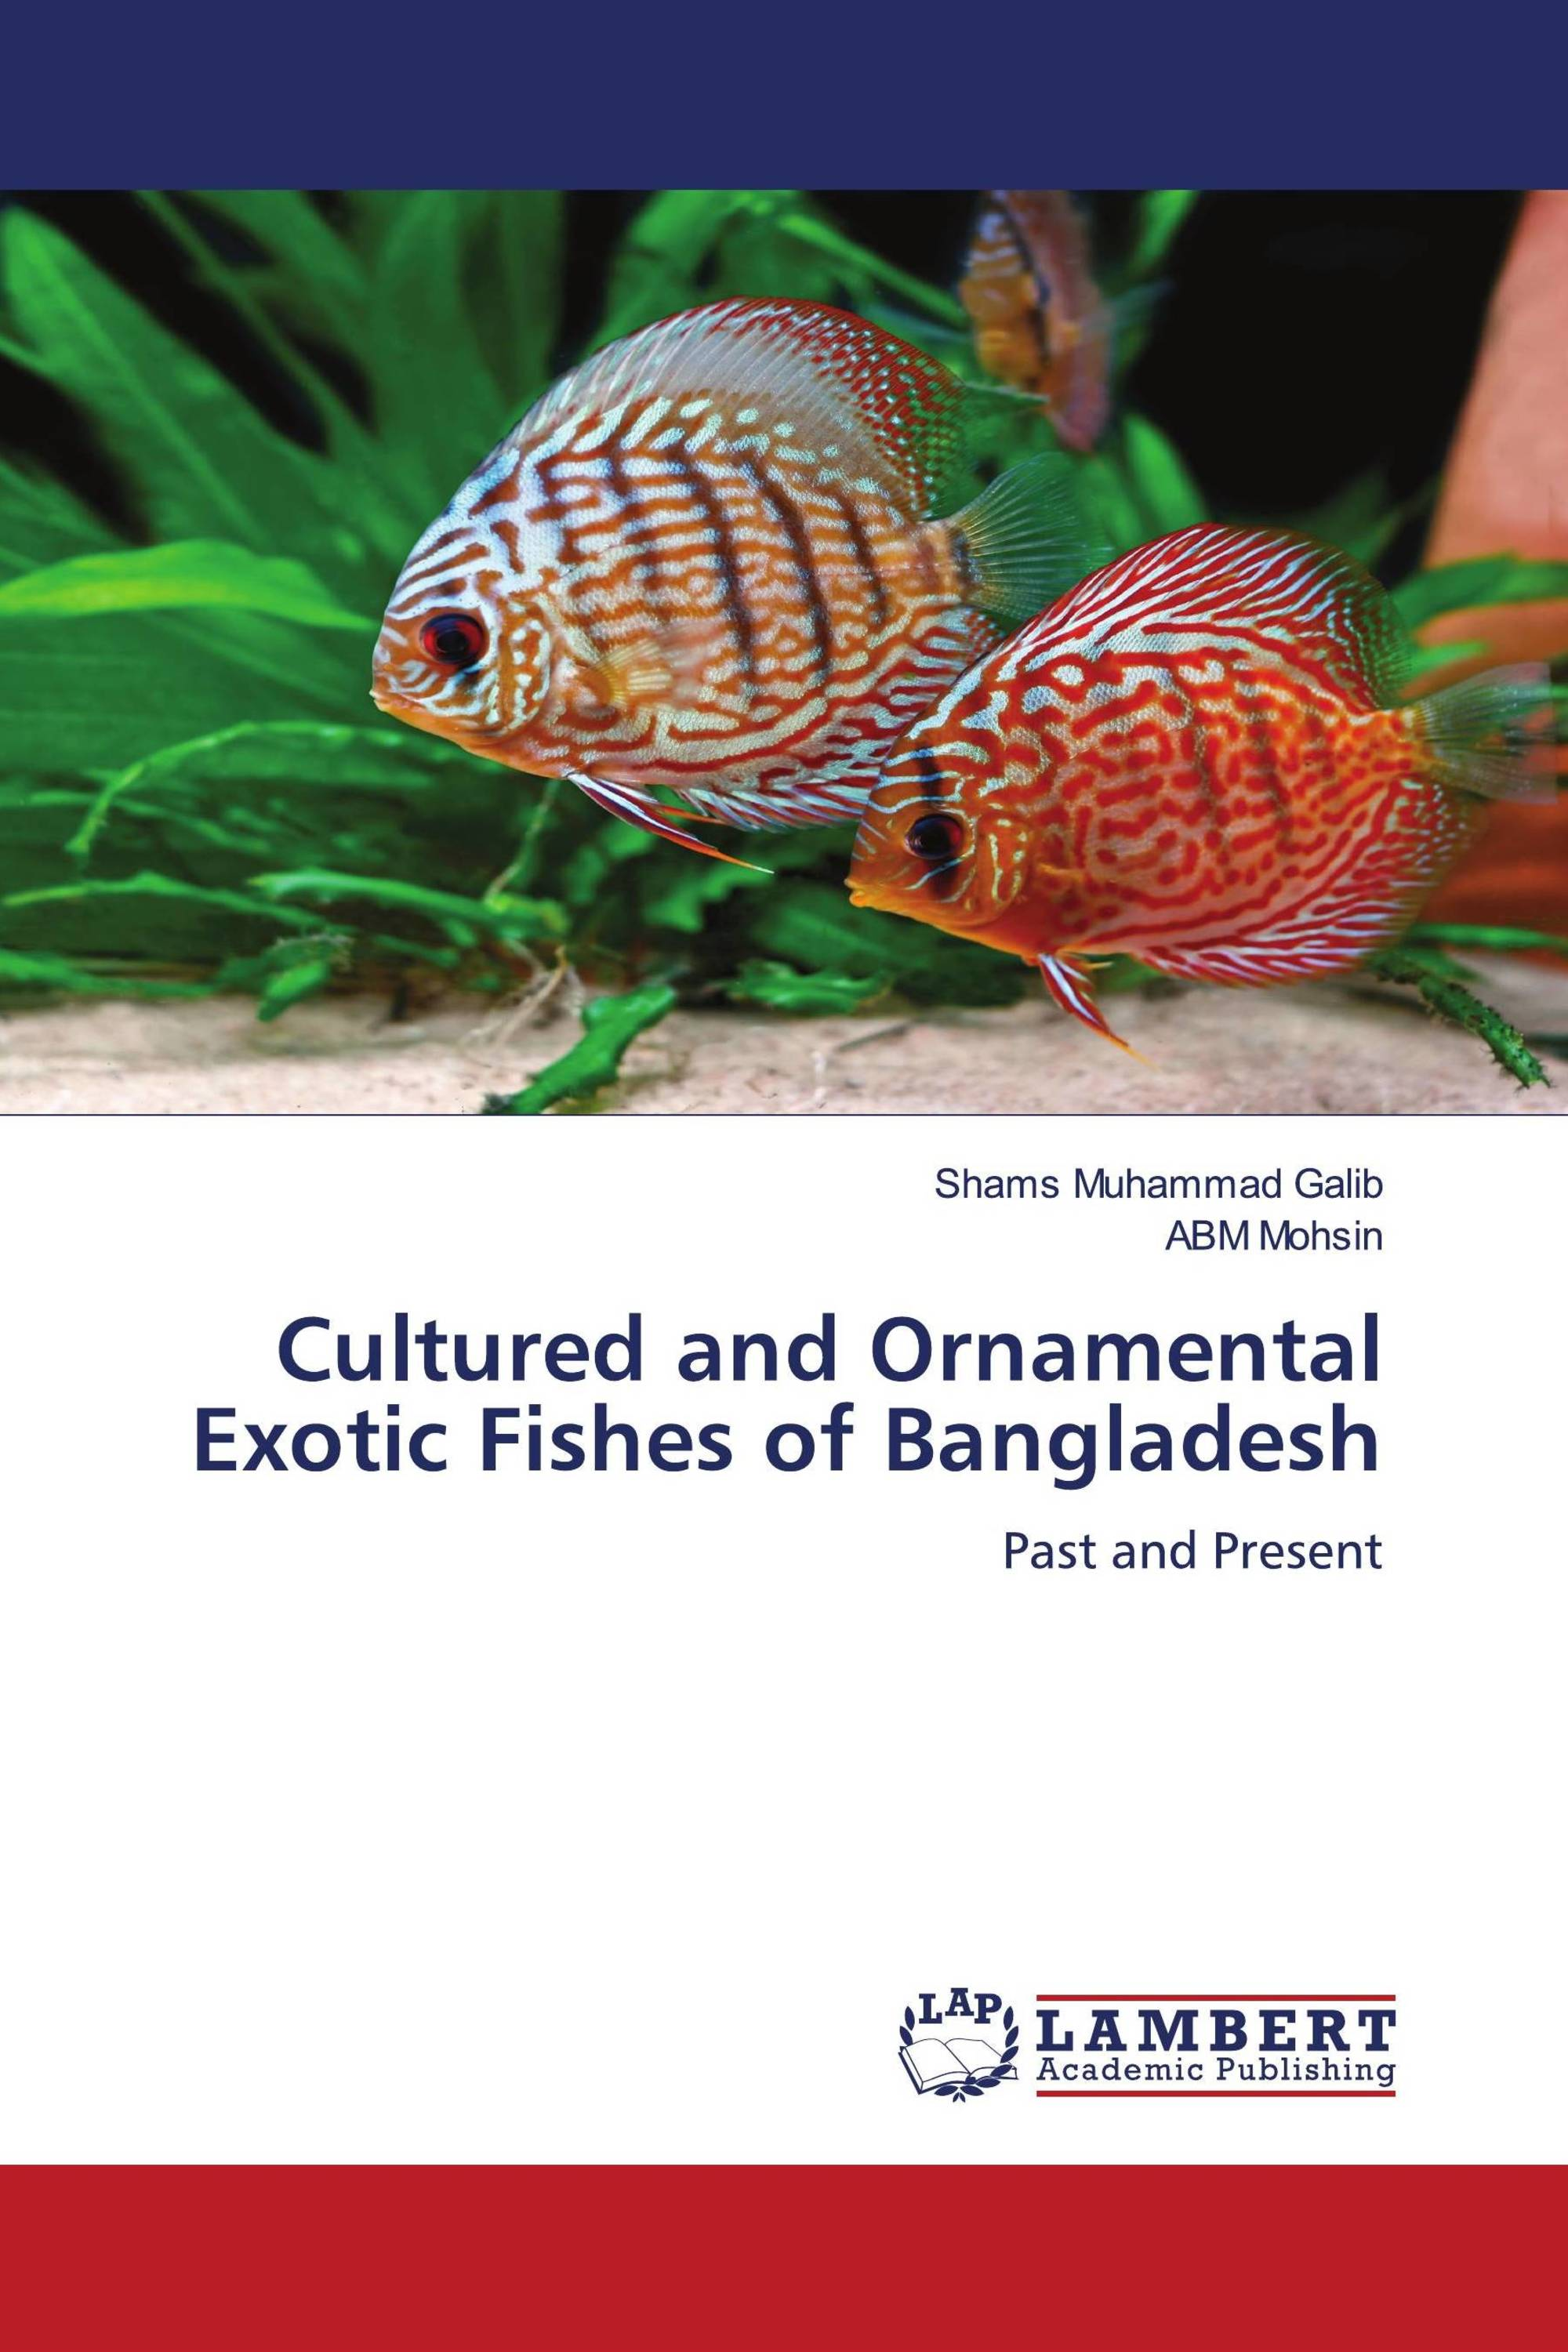 Cultured and Ornamental Exotic Fishes of Bangladesh